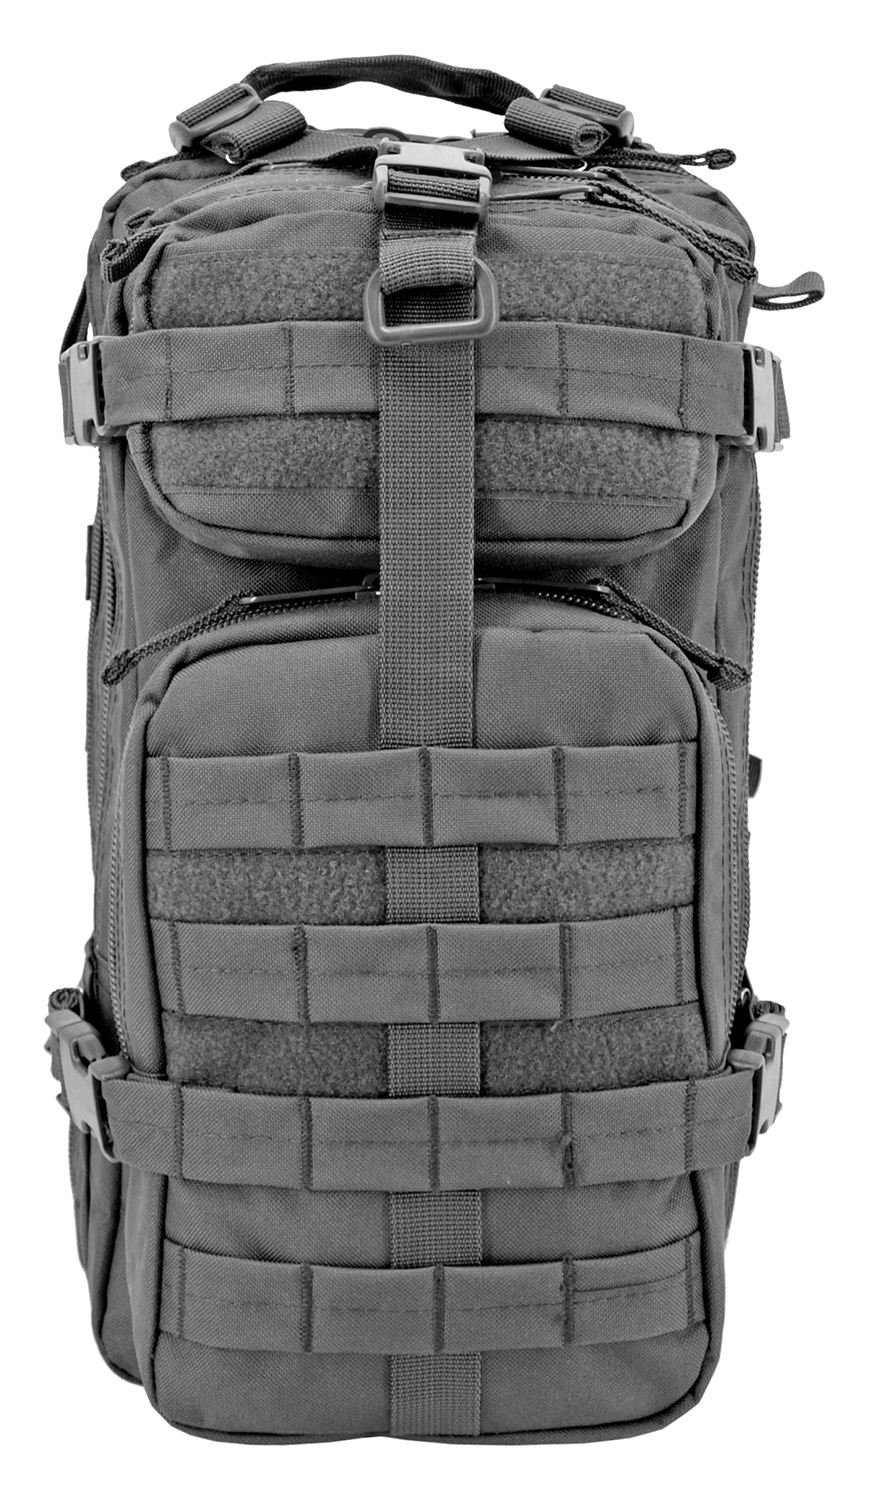 Tactical Assault Backpack - Grey